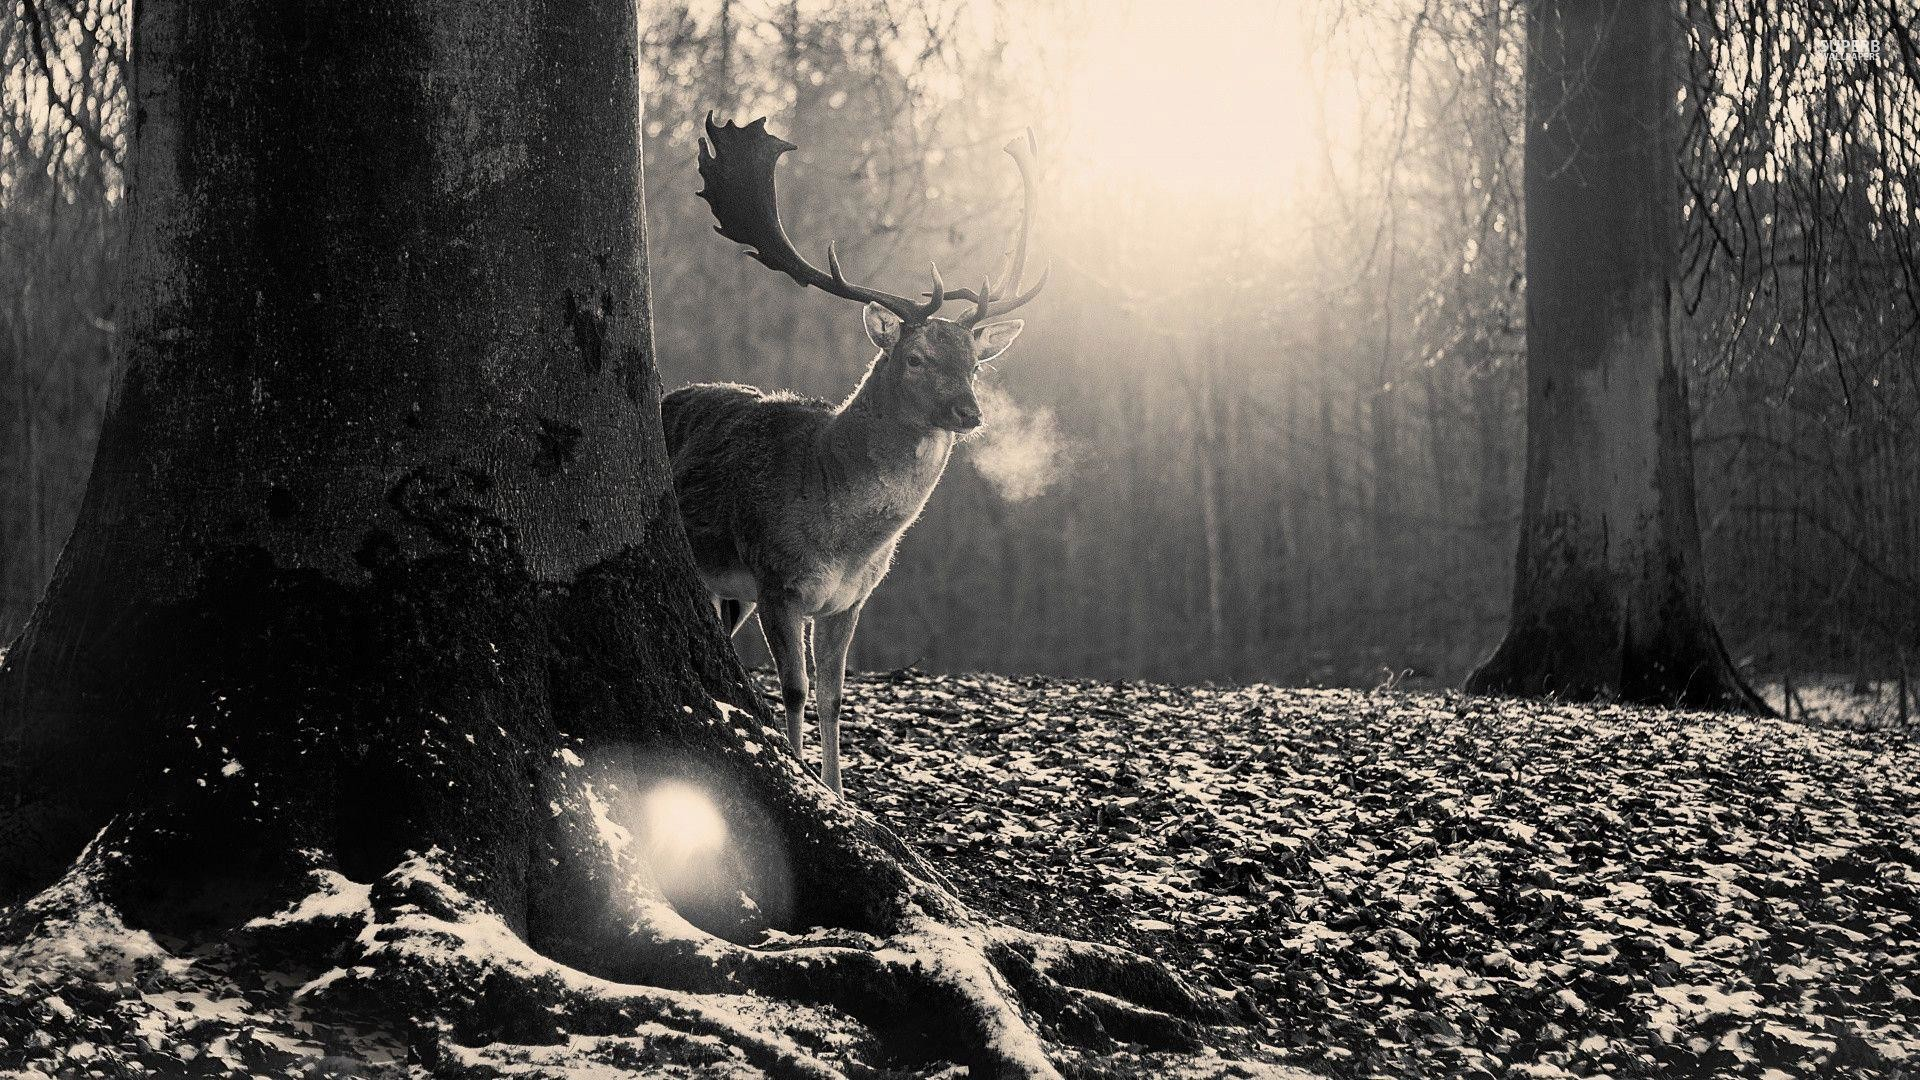 wallpaper.wiki-Image-of-Black-and-White-Forest-